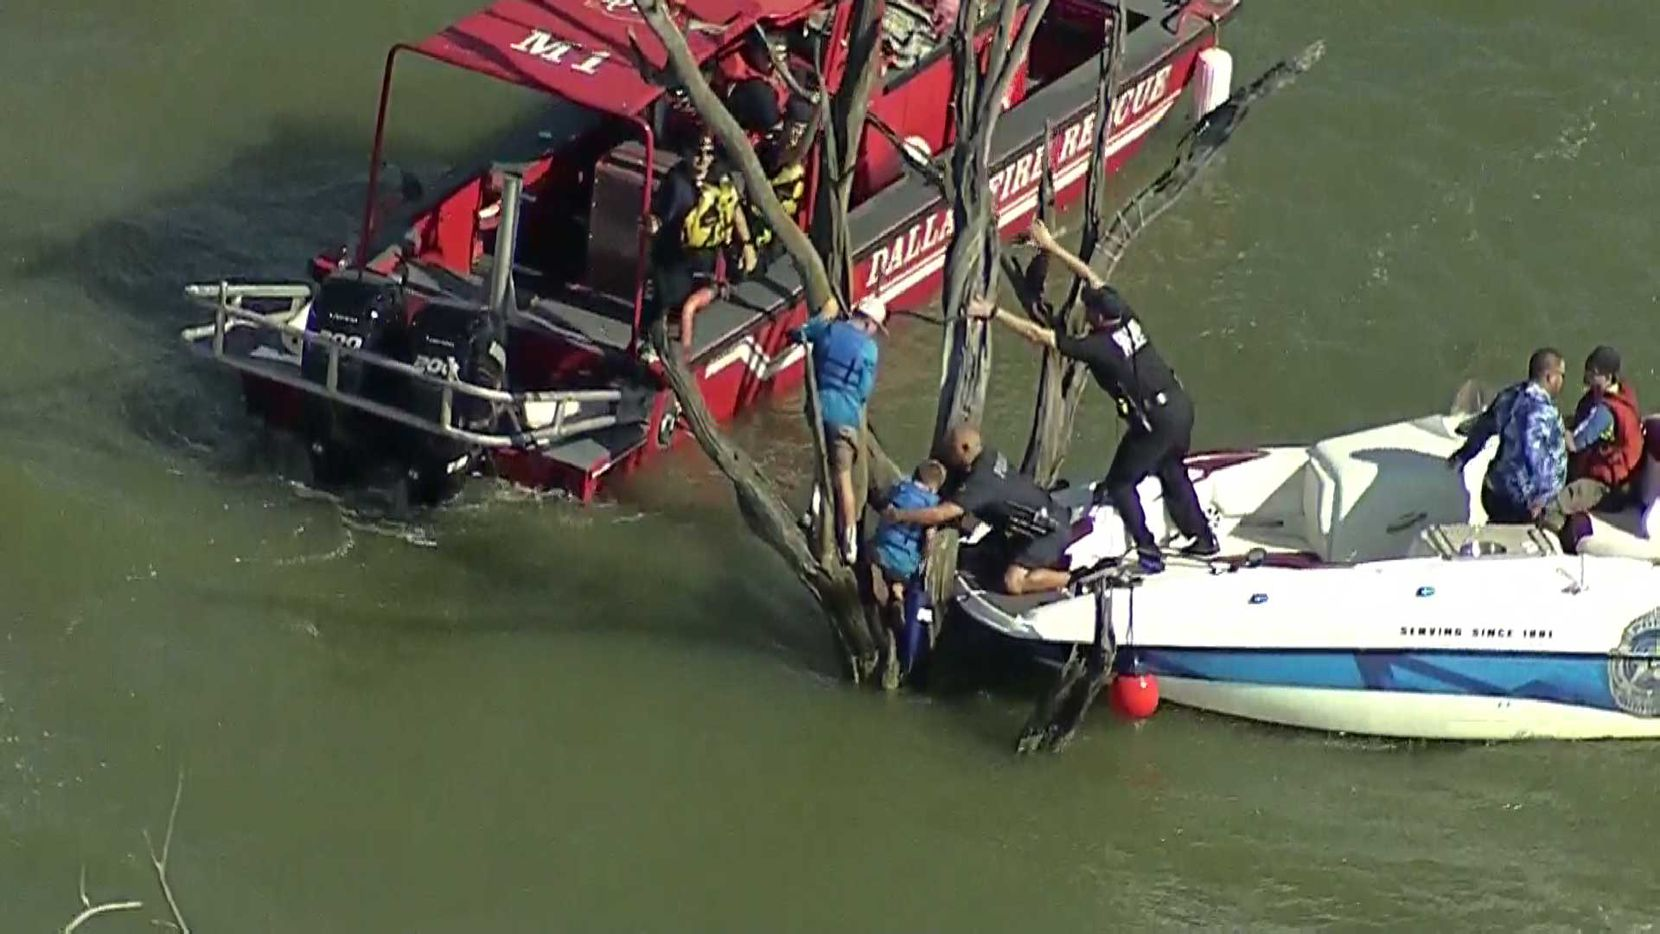 Rescuers from Dallas police and Dallas Fire-Rescue work to free two children stranded in a tree after their boat sank Wednesday in Lake Ray Hubbard.